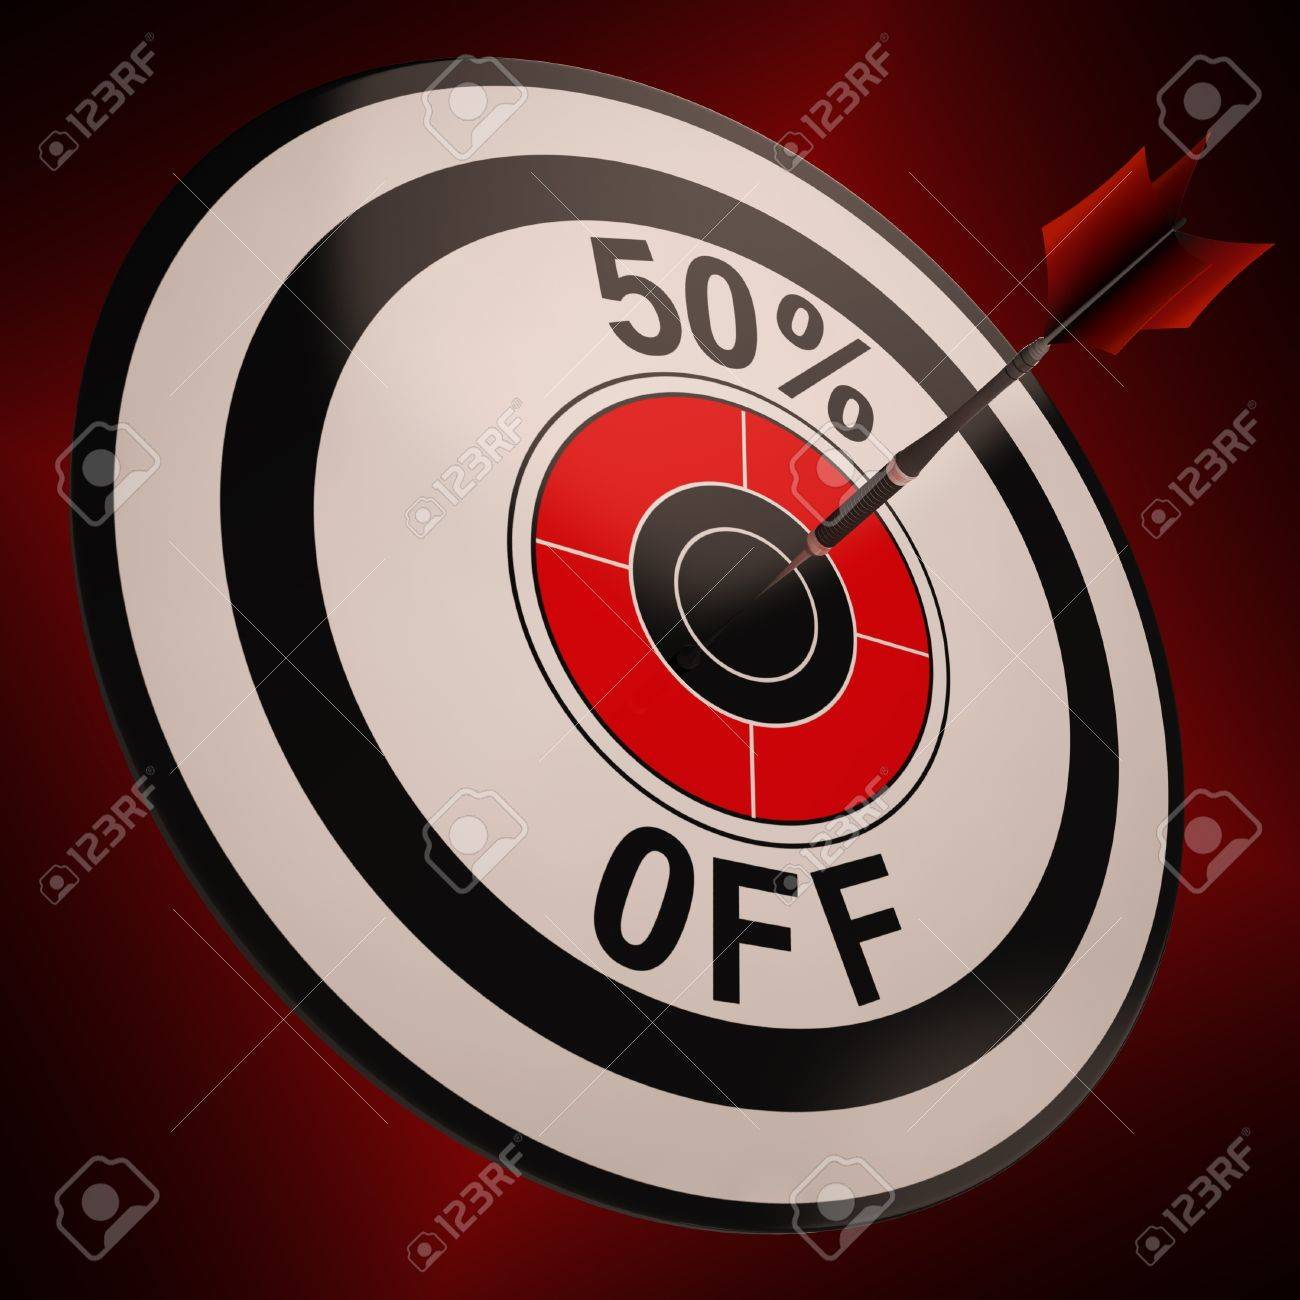 50 Percent Off Showing Markdown Purchasing Bargain Advertisement Stock Photo - 18407201